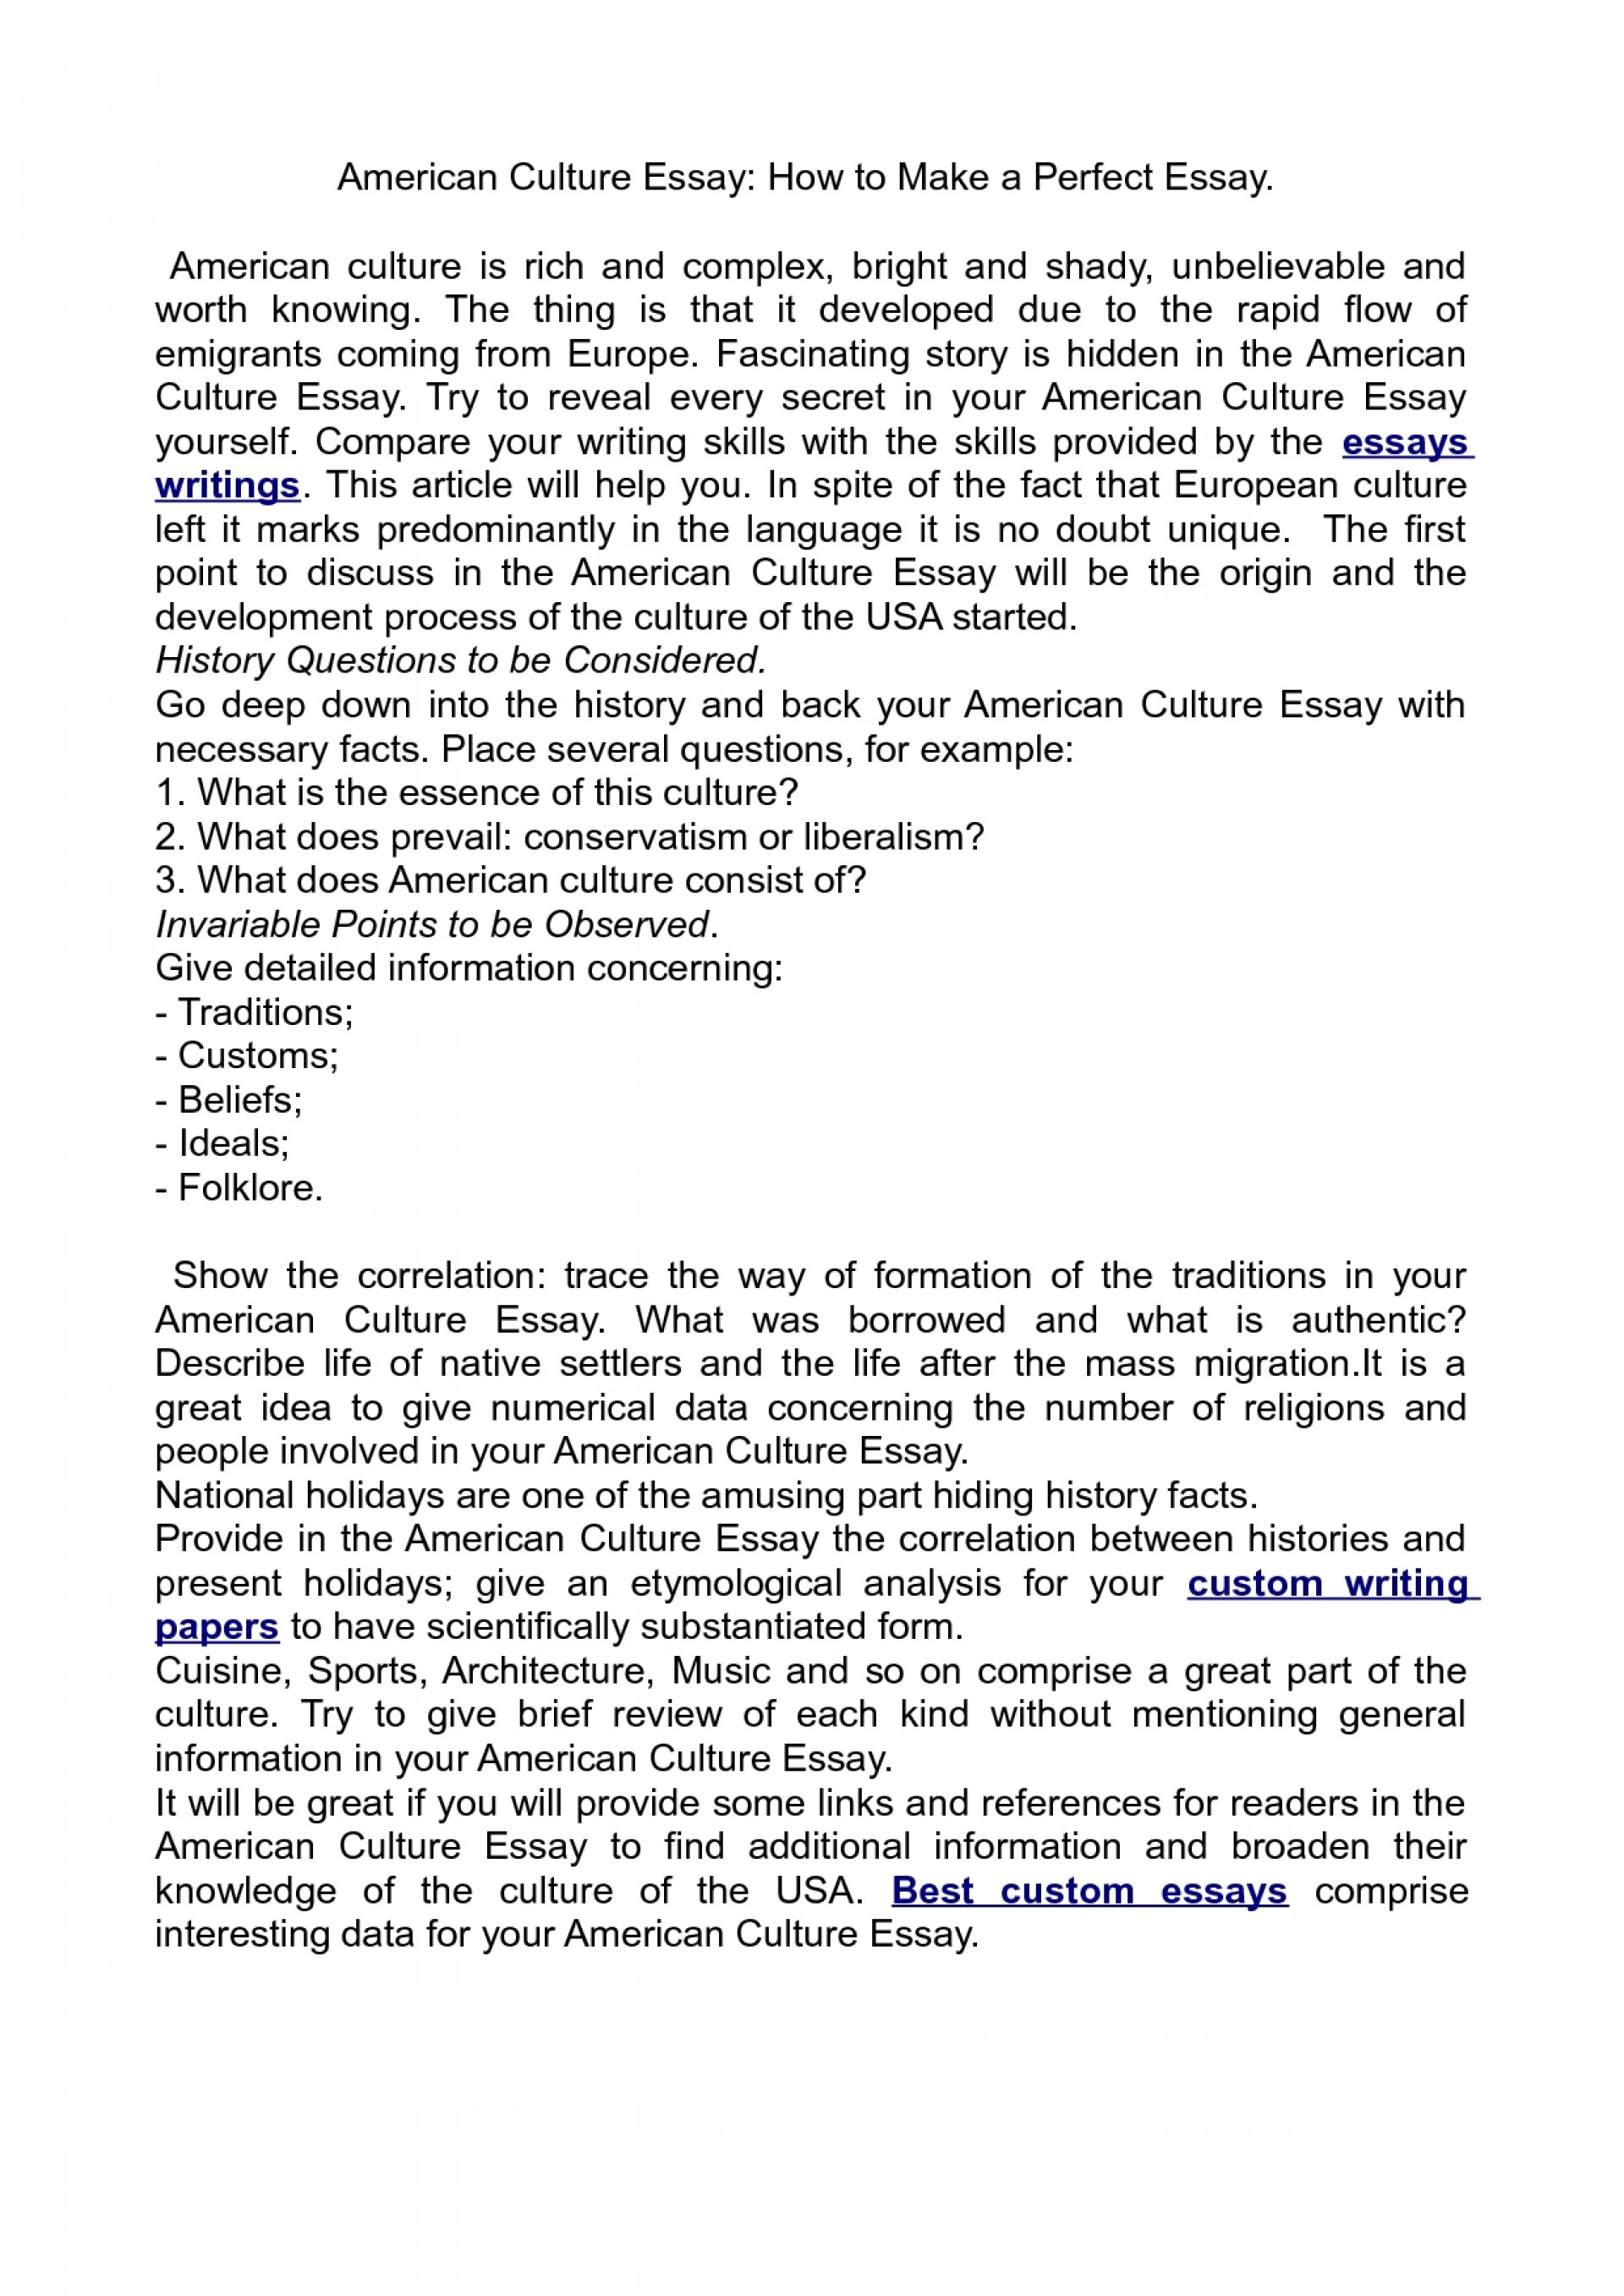 002 Essay Example What Is An American Stupendous Thesis Your Dream Ideas 1920